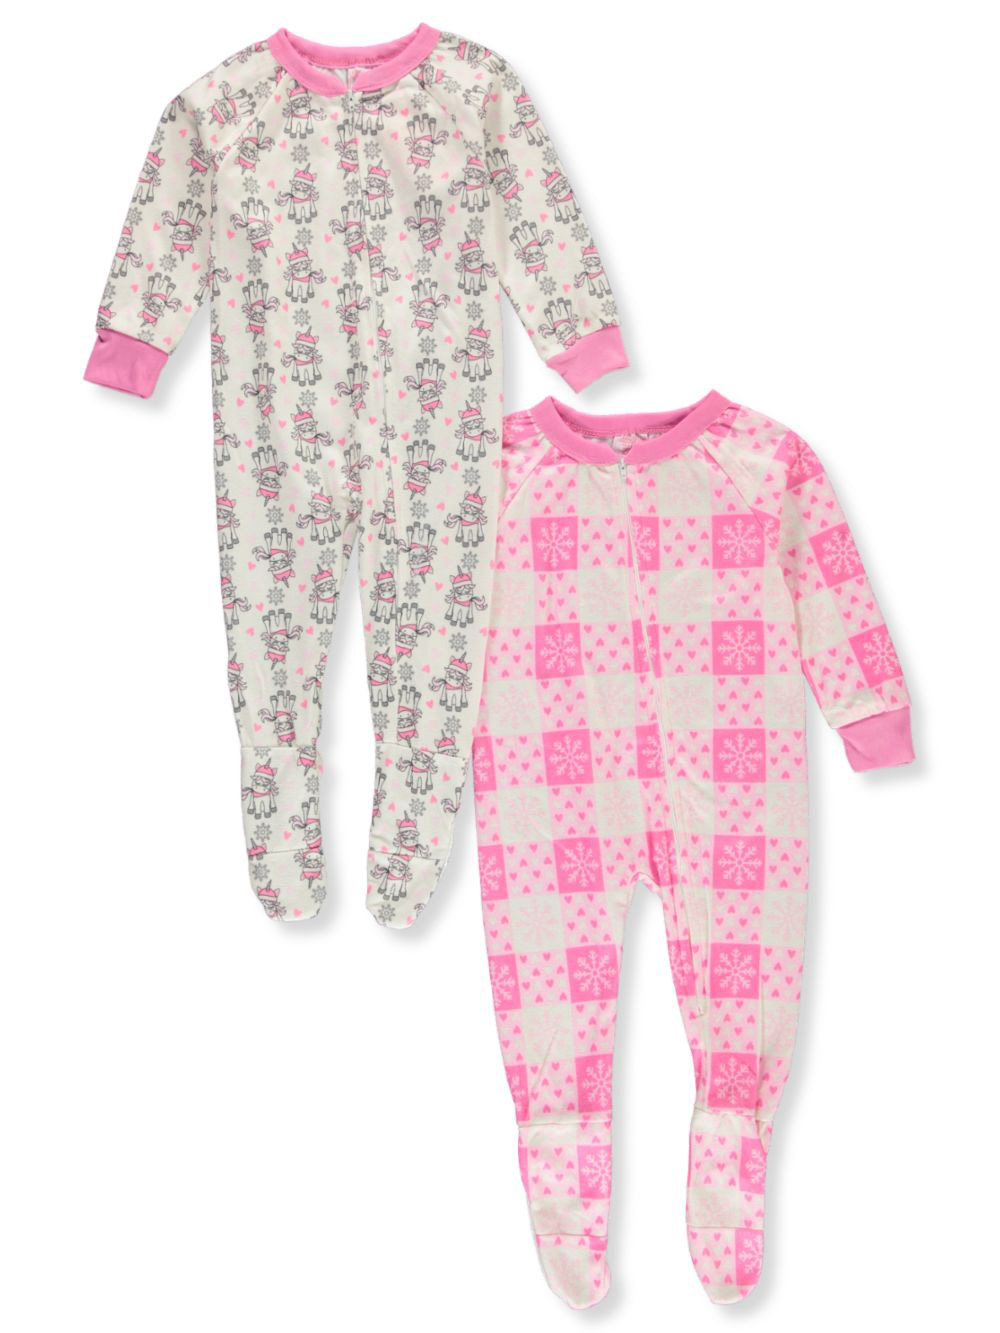 Girls Fashion 2-Pack Footed Pajama Suits